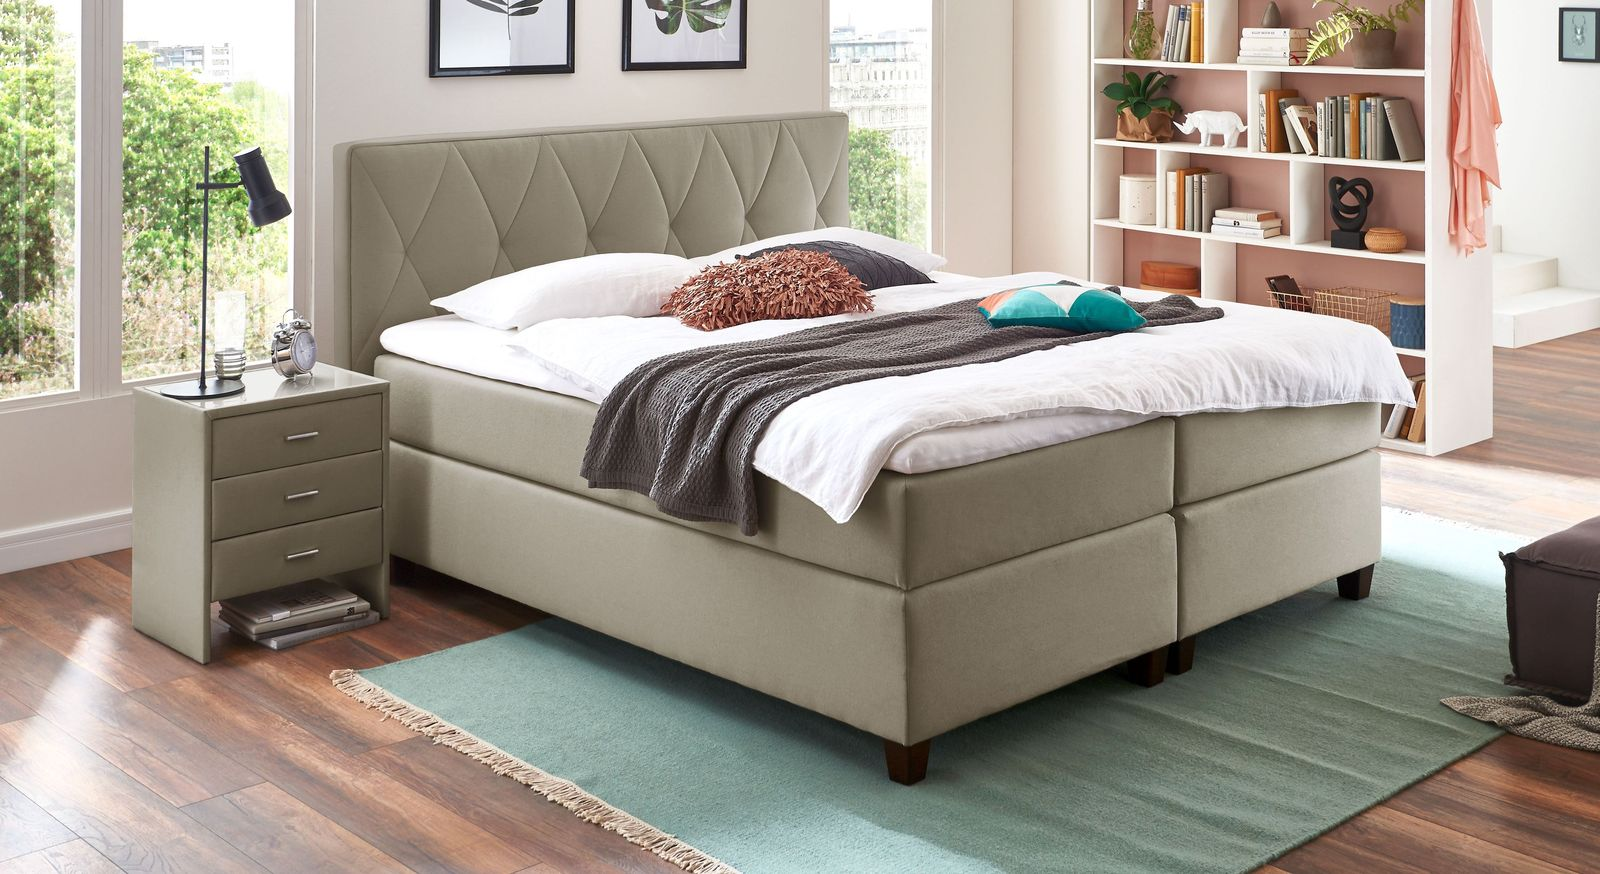 66 cm hohes Boxspringbett Midway in Taupe